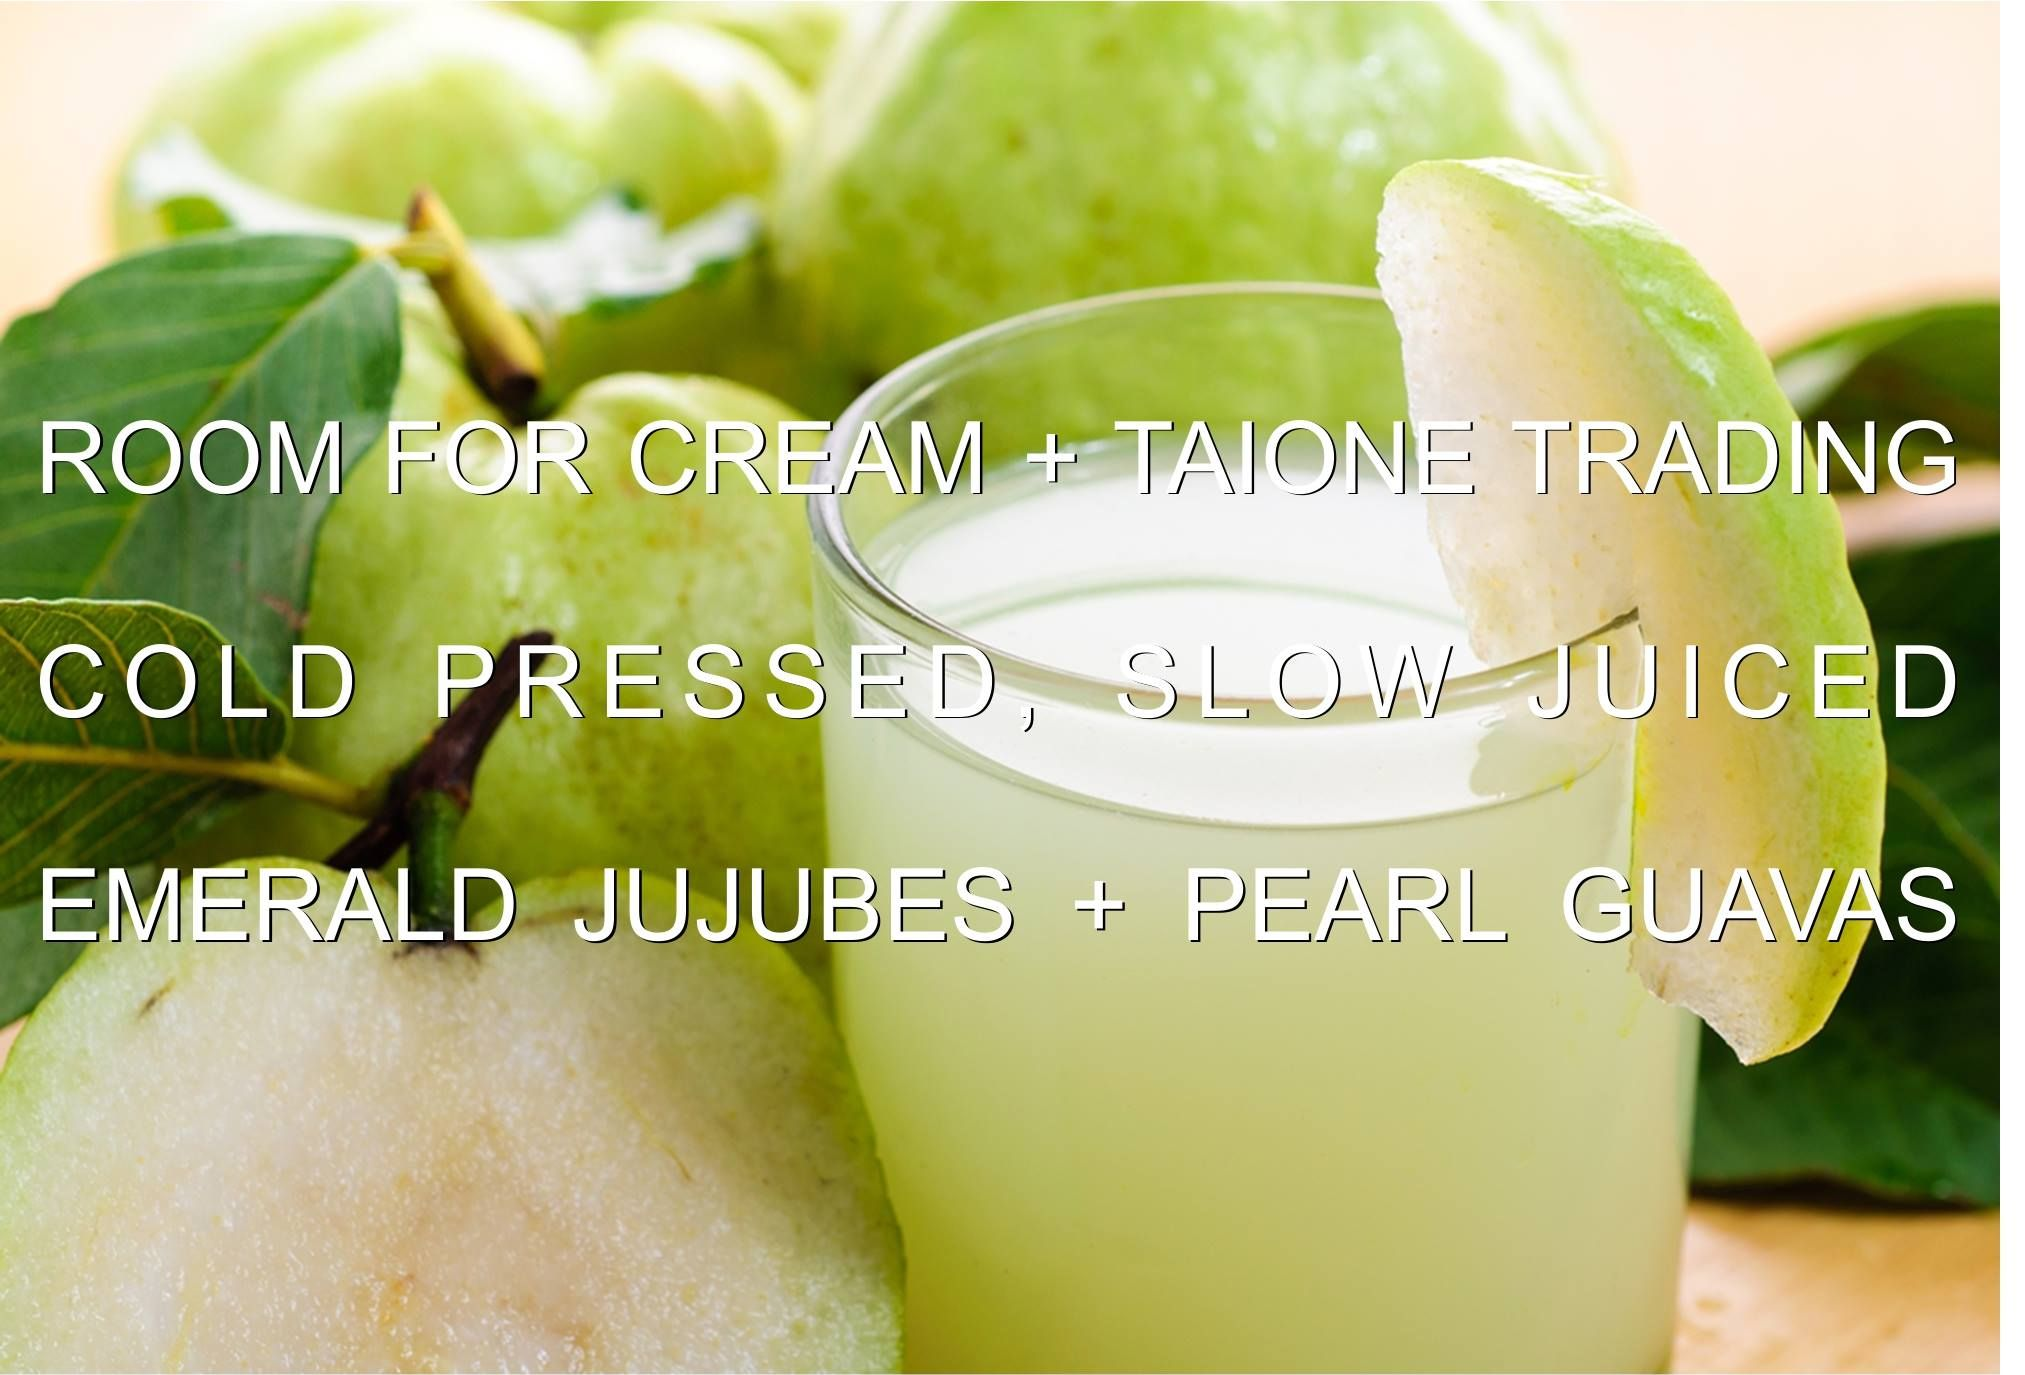 Today we are excited to announce that Room for Cream is proudly serving slow juiced fresh Emerald Jujubes and Pearl Guavas, as well as tea creations of Jujube Ginger Black Tea and Guava Peppermint Green Tea served either cold or hot! Thank you!